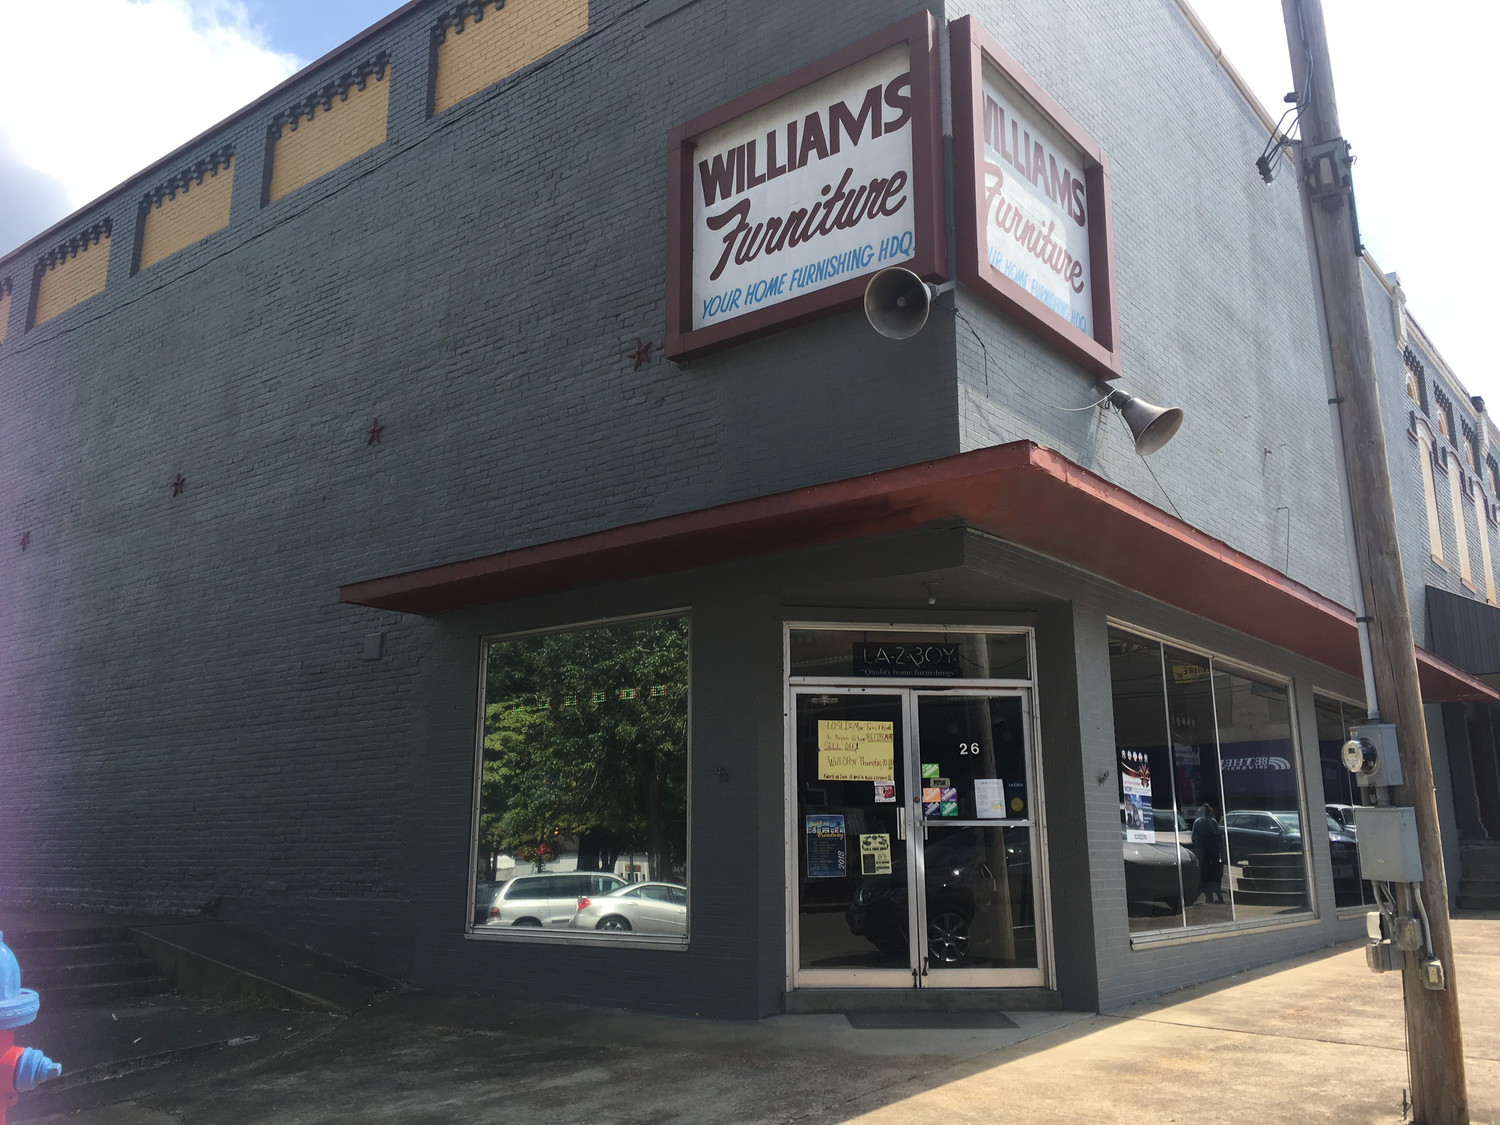 Williams Furniture in Downtown McKenzie on Monday, August 27, 2018.